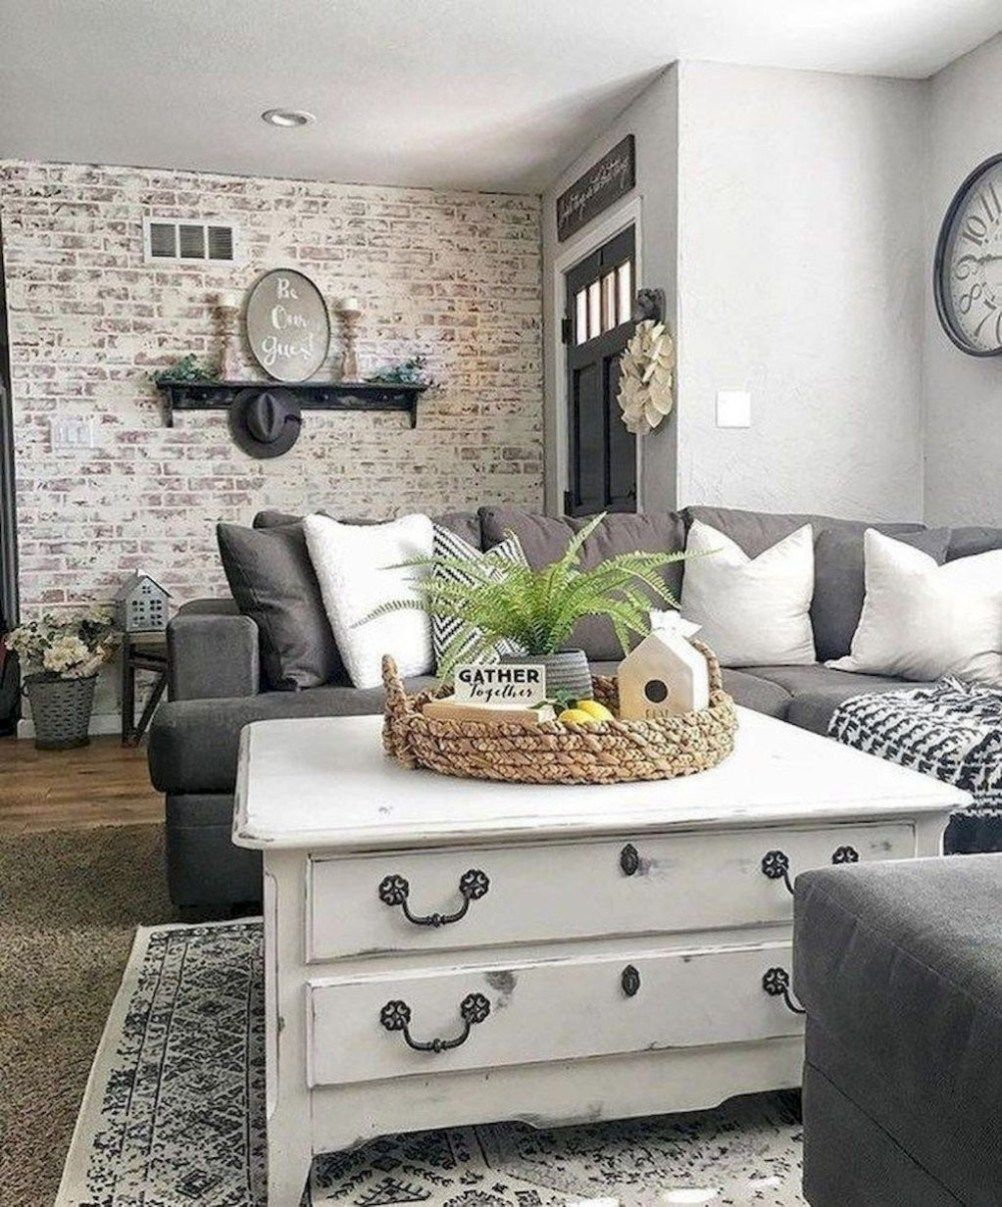 Living Room Staging Ideas: Easy Living Room Design And Decorating On A Budget 23 In